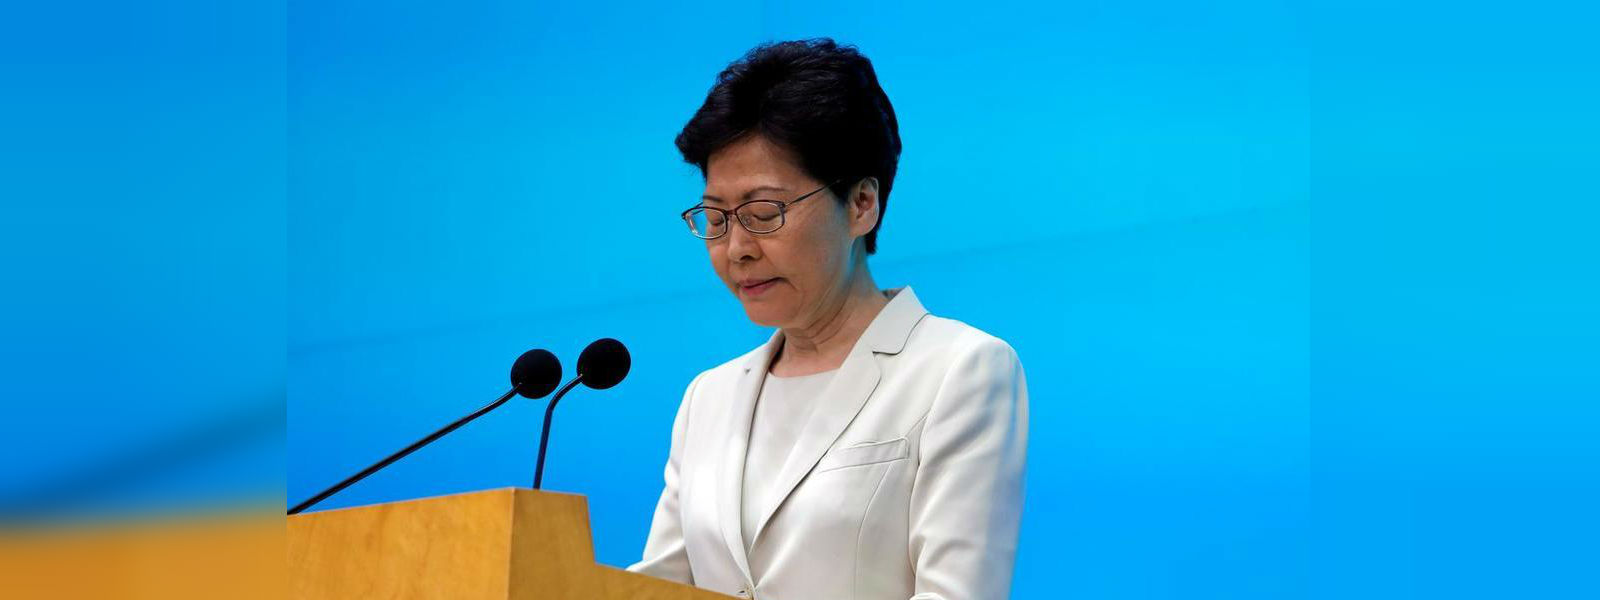 """Hong Kong leader says extradition bill is """"dead"""", refuses independent police inquiry"""